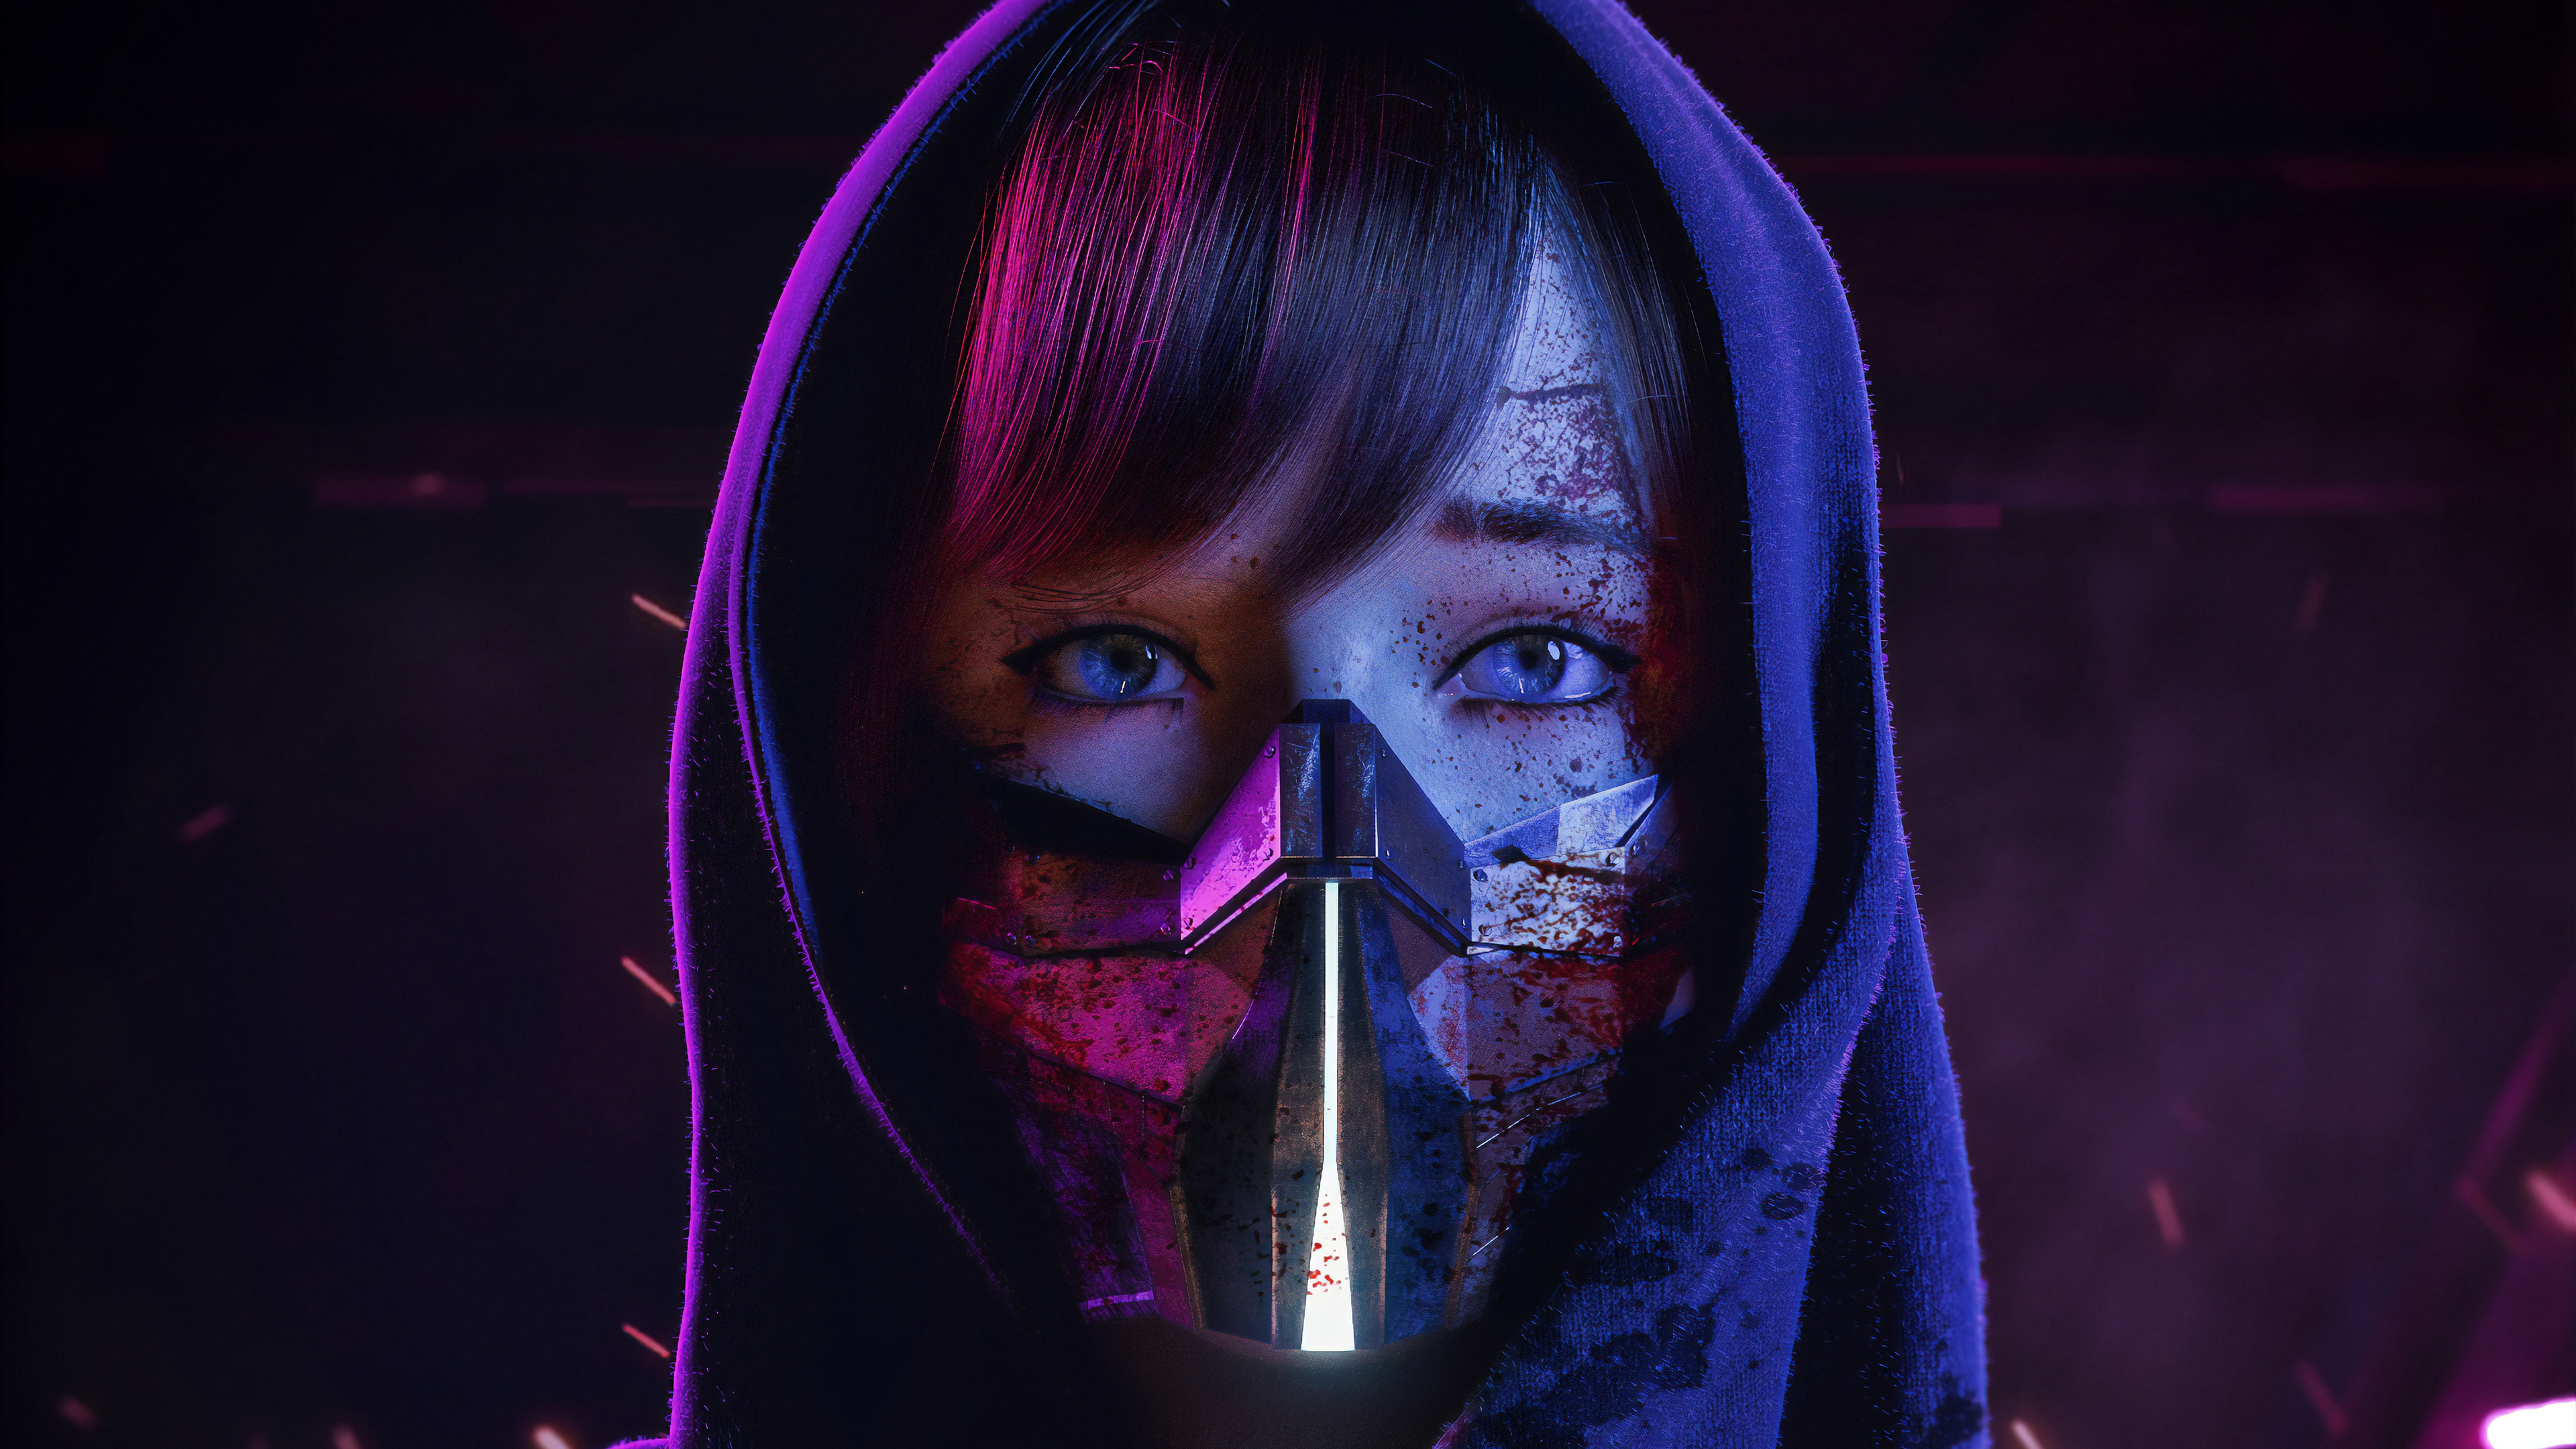 General 3840x2160 digital art artwork cyber cyberpunk neon lights neon lights mask women blue eyes fantasy girl science fiction concept art 3D futuristic digital people